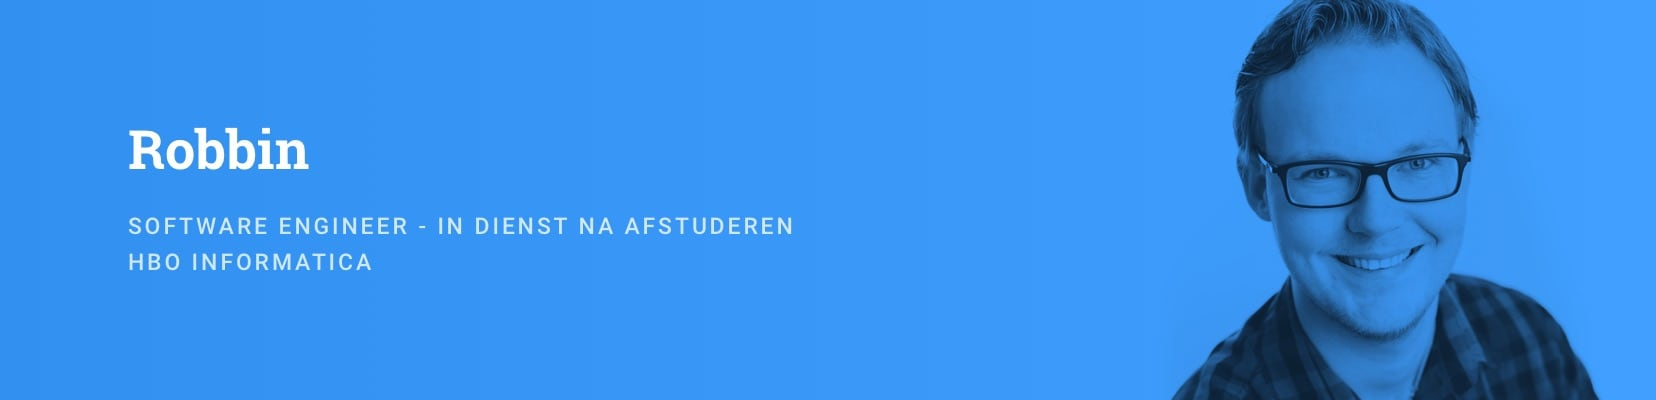 Robbin - Software Engineer - In dienst na afstuderen - HBO Informatica